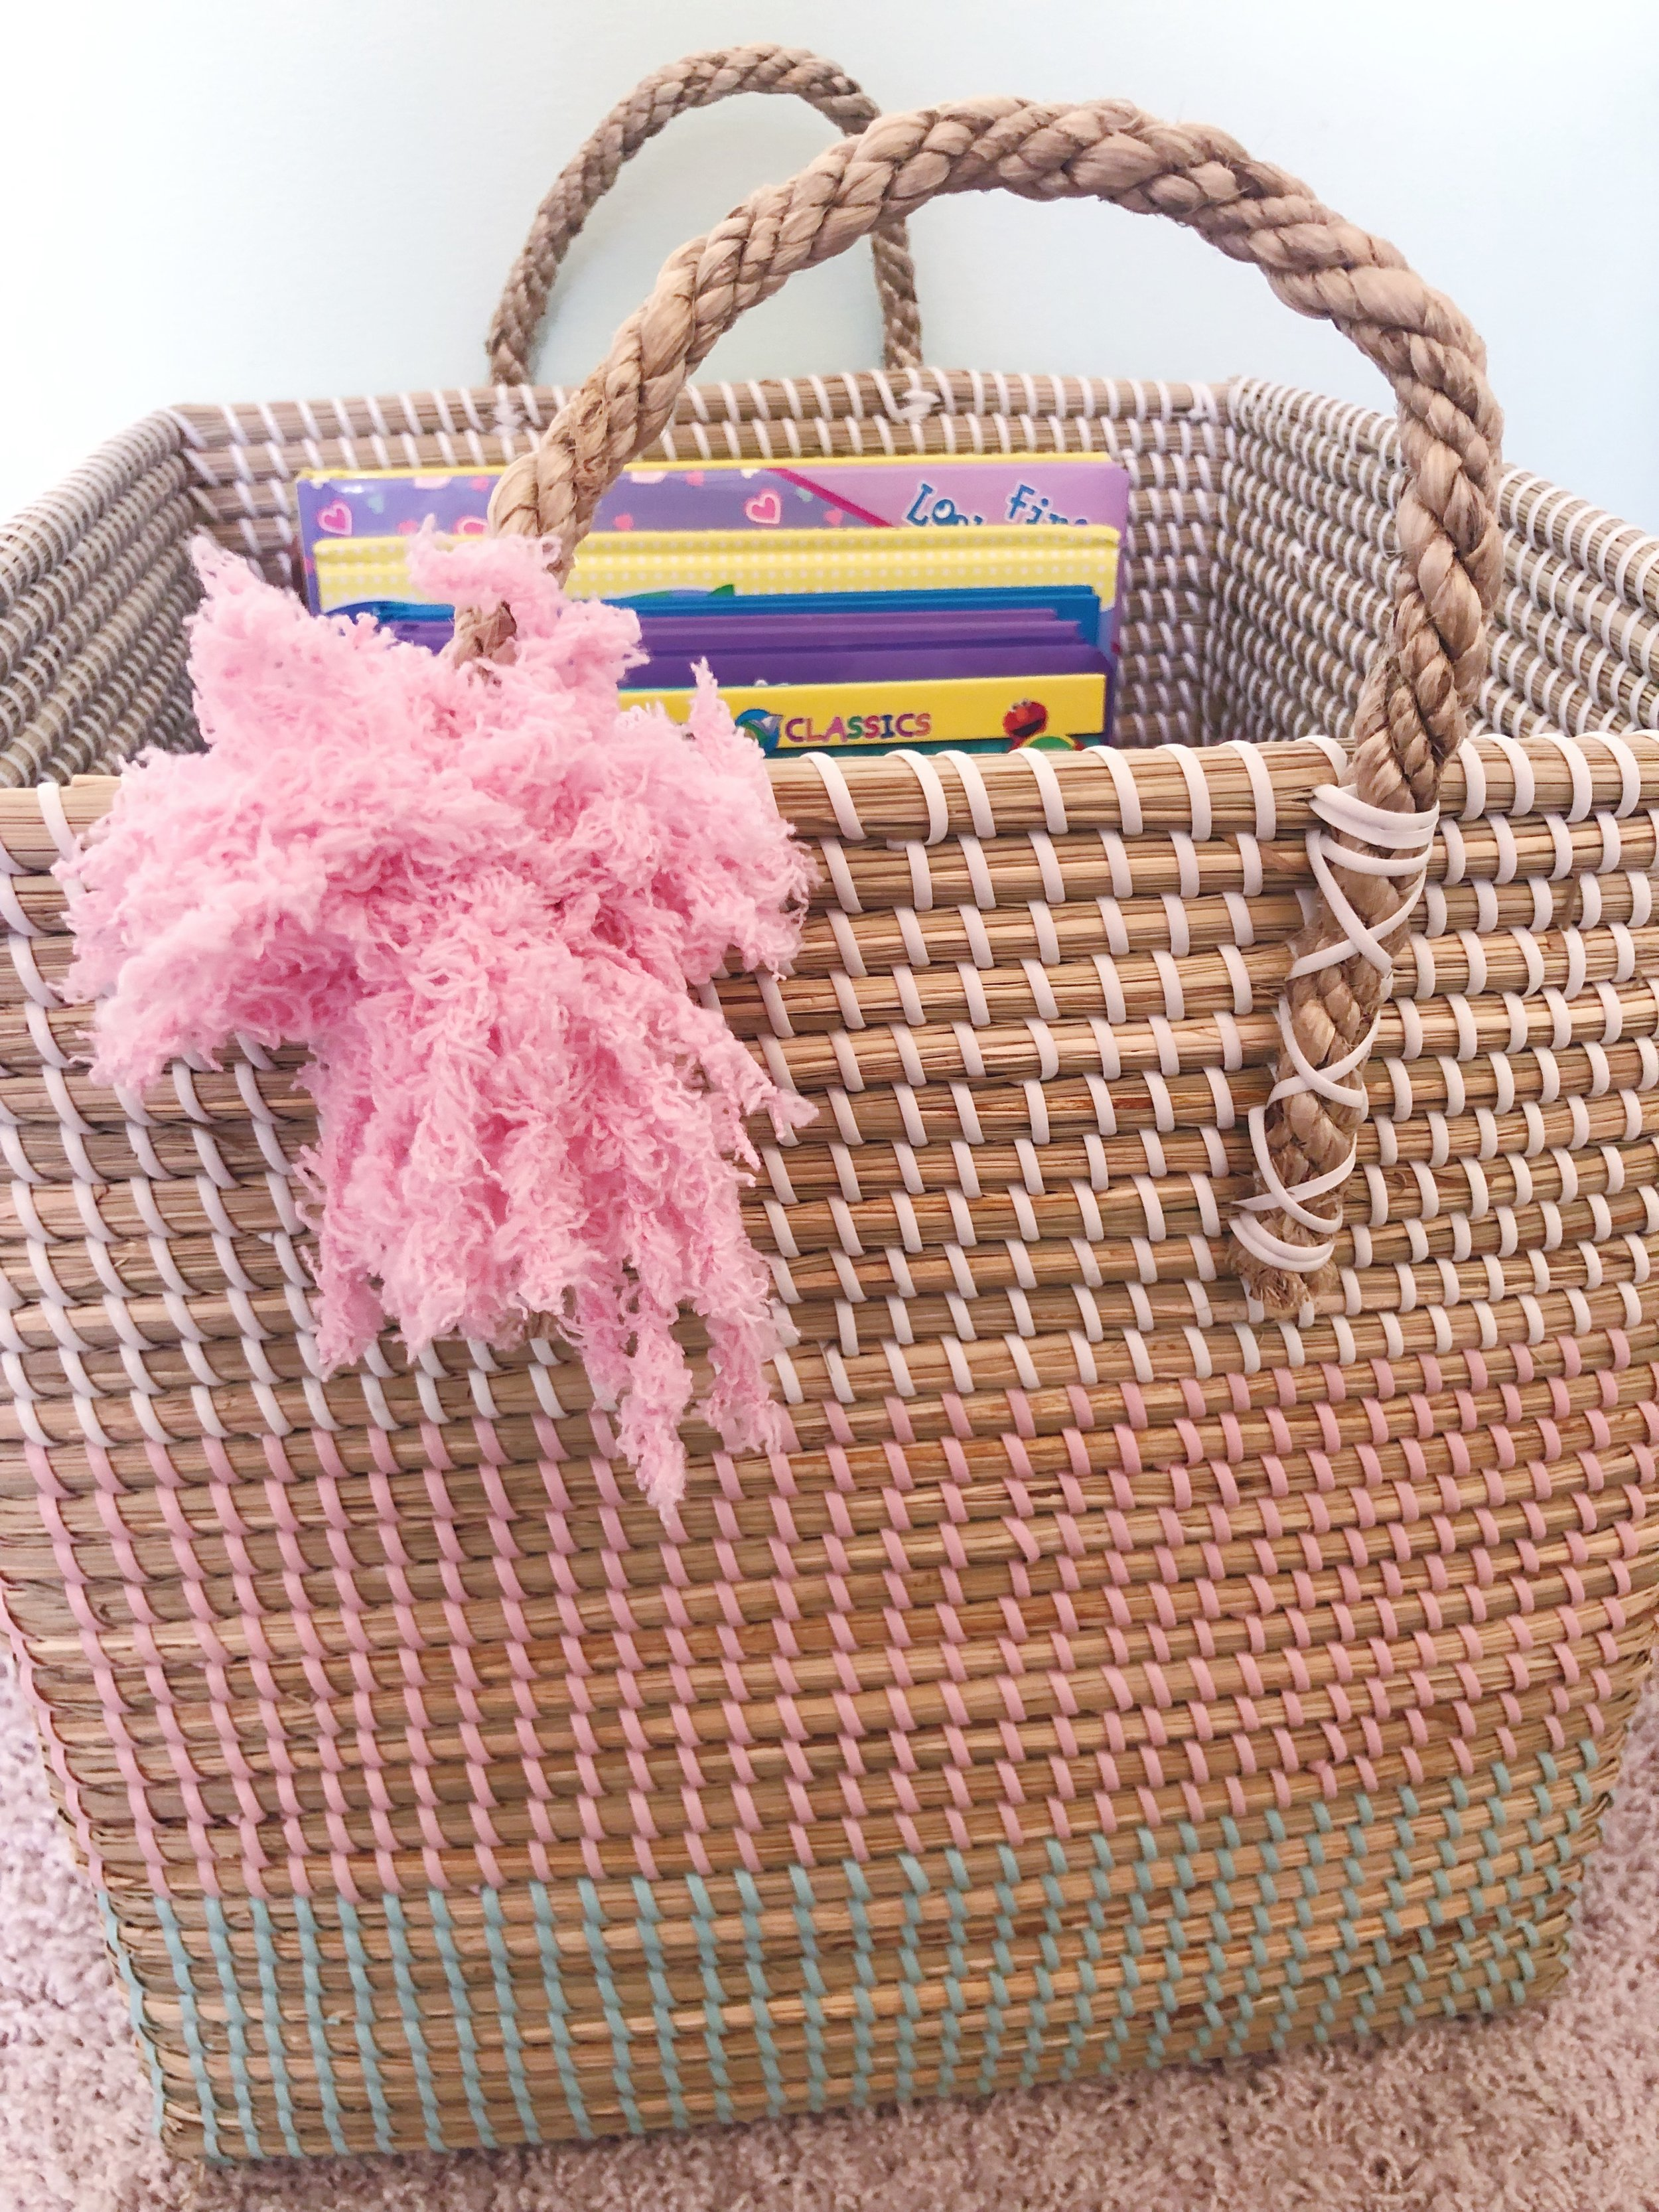 baskets, containers& bins - My house is full of them- meaning every item has a place. I even have a basket I keep at the bottom of our stairs that is my 'reminder basket' of random items that need to be put away. I love the look of all clear containers and bins for certain items- holiday decor or crafts. Baskets are also a great way to express your own style- not everything is meant to be seen through a clear bin.